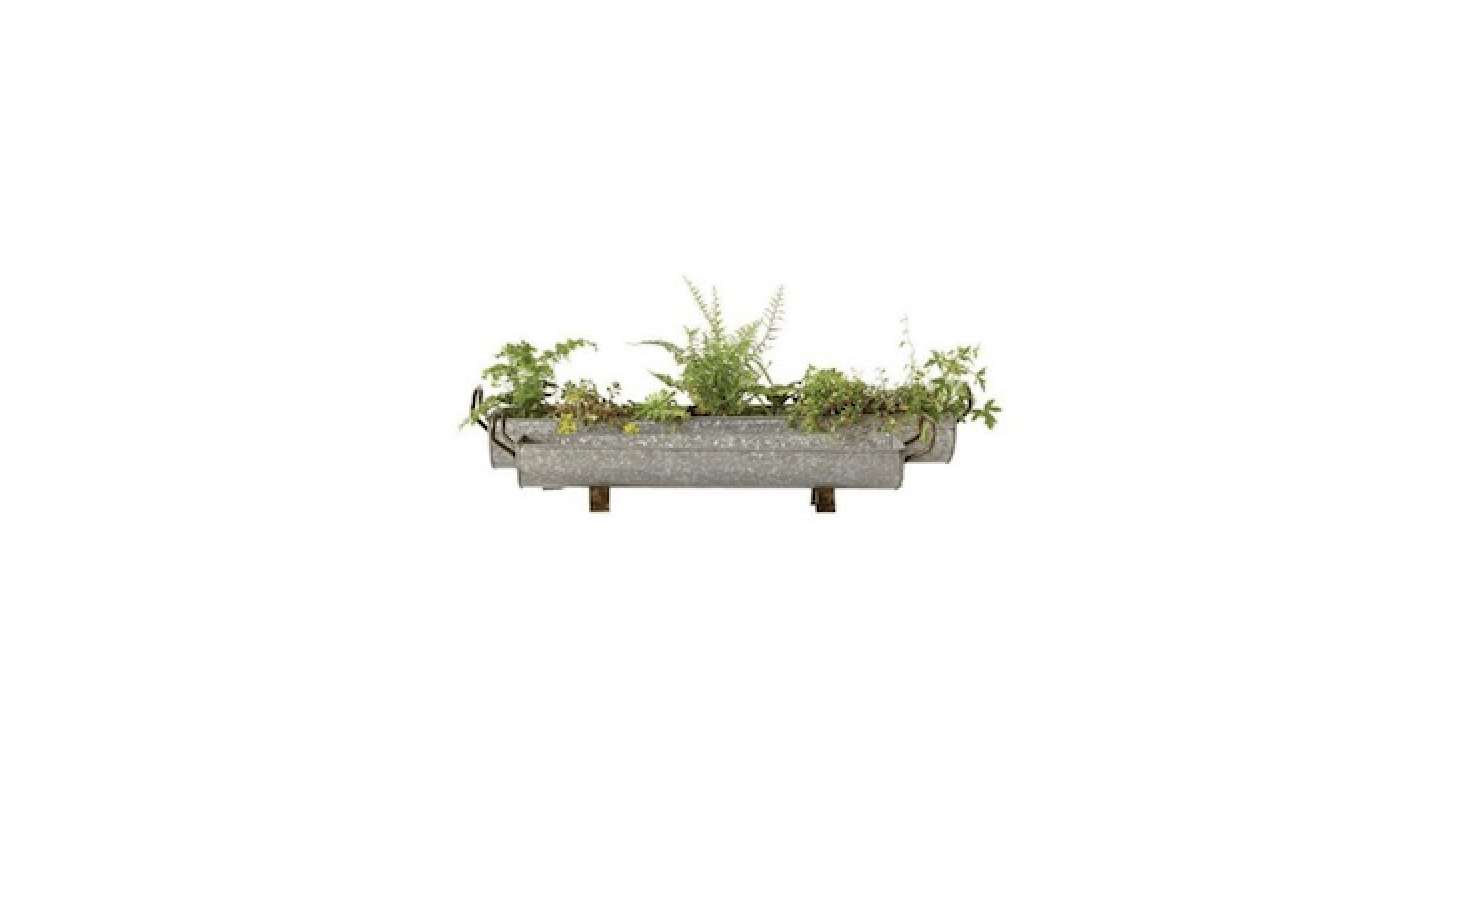 Outdoor Planters Near Me 10 Easy Pieces Galvanized Trough Planters Gardenista